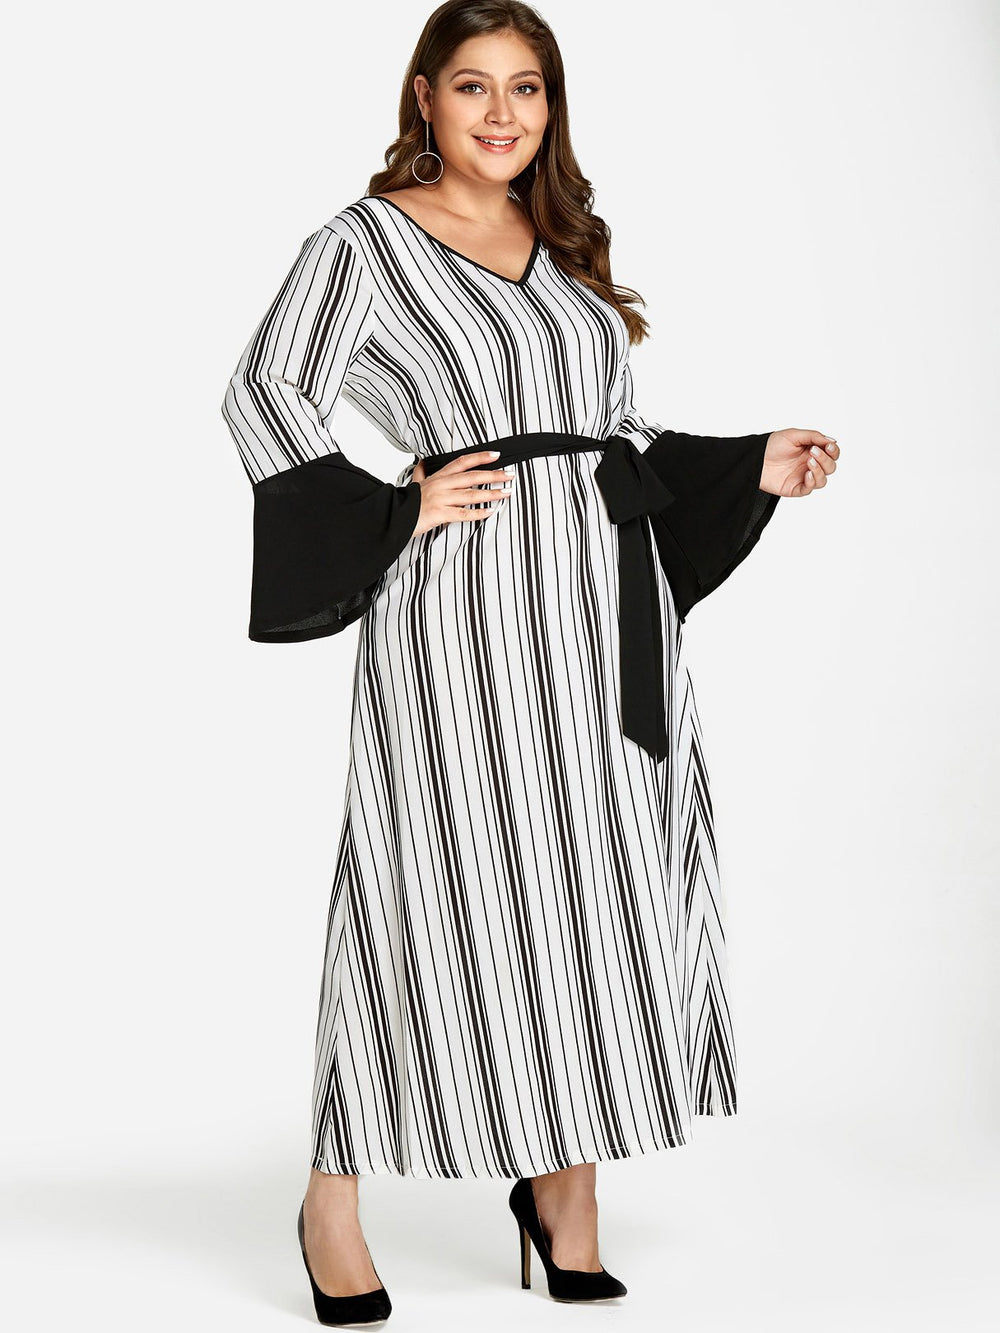 Ladies Striped Plus Size Dresses